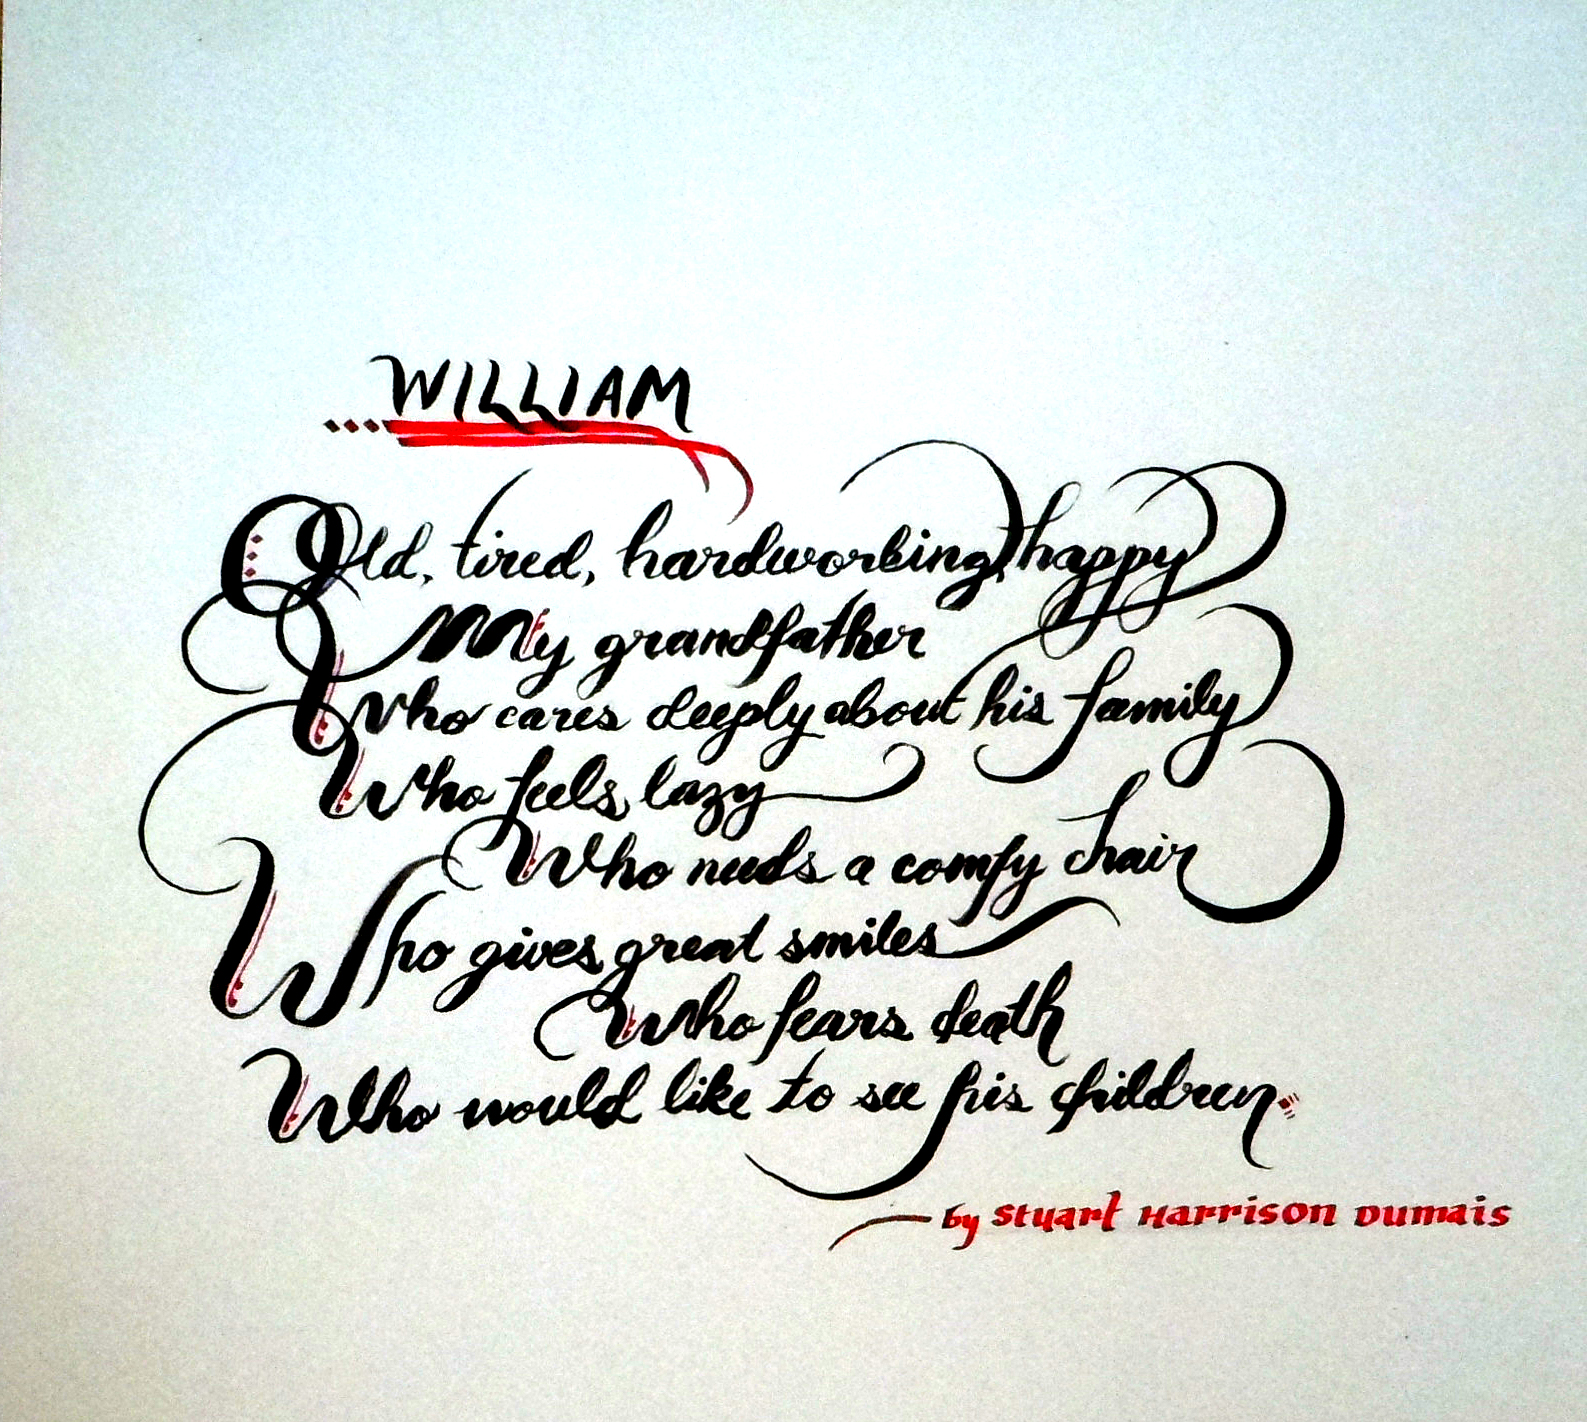 grandfather william calligraphy1.jpg